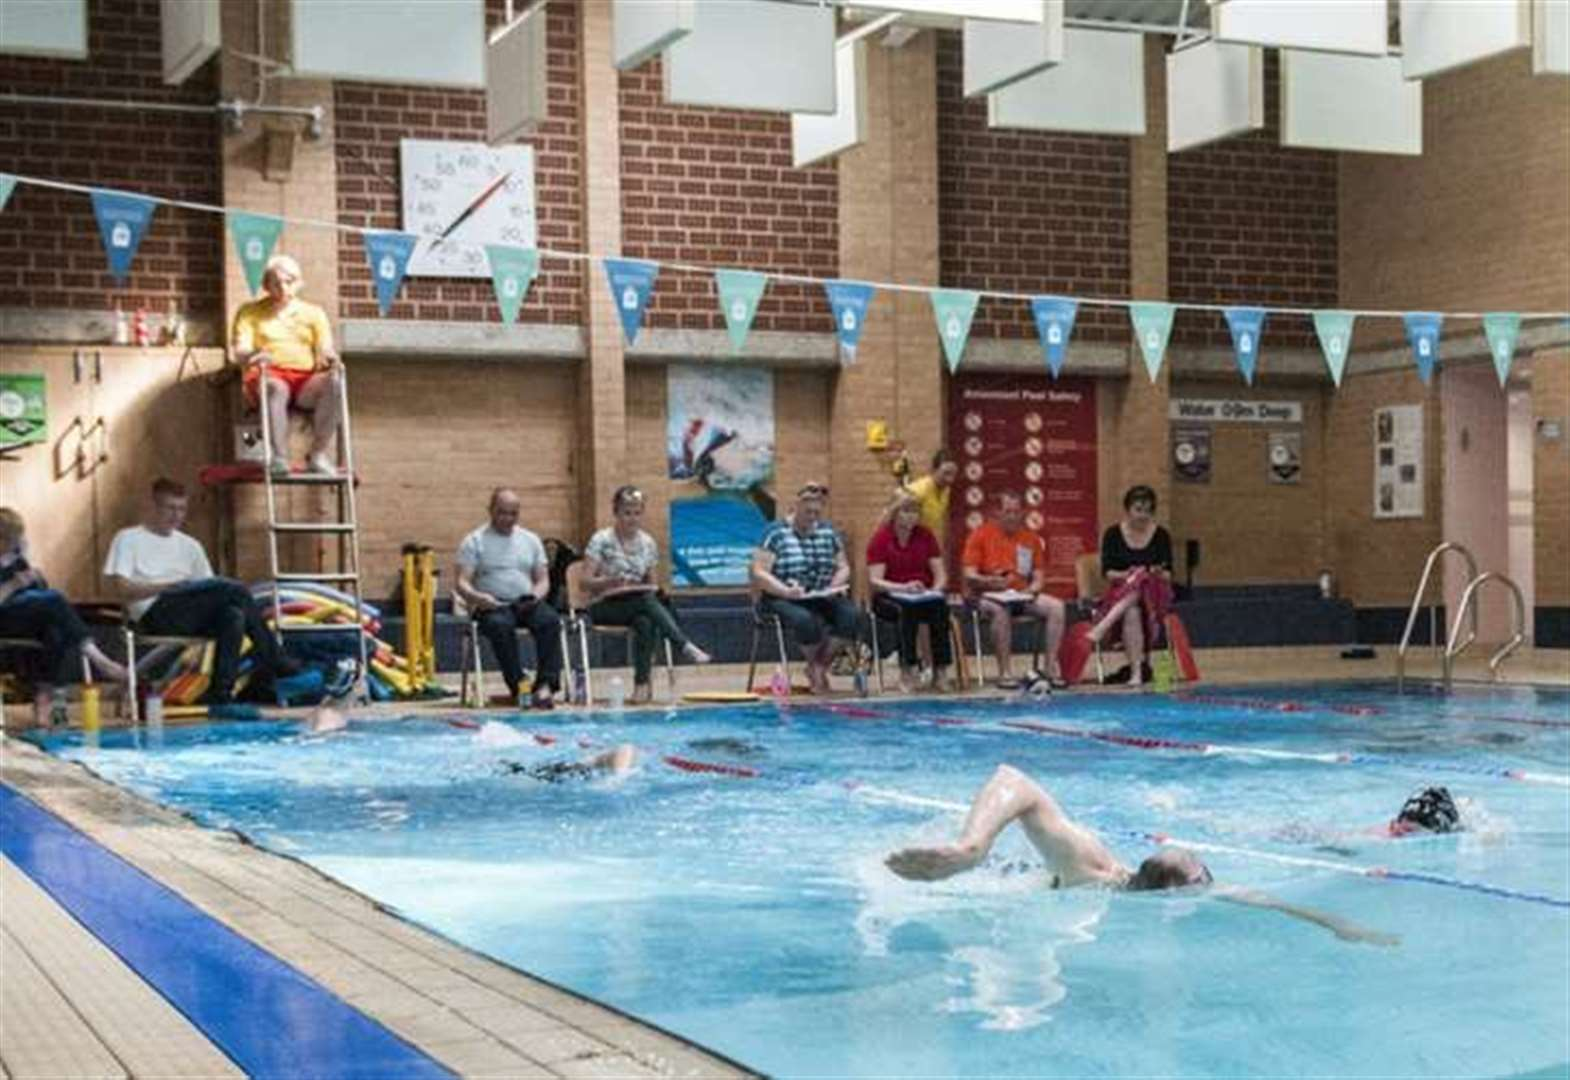 Stowmarket leisure centre could get £2m upgrade